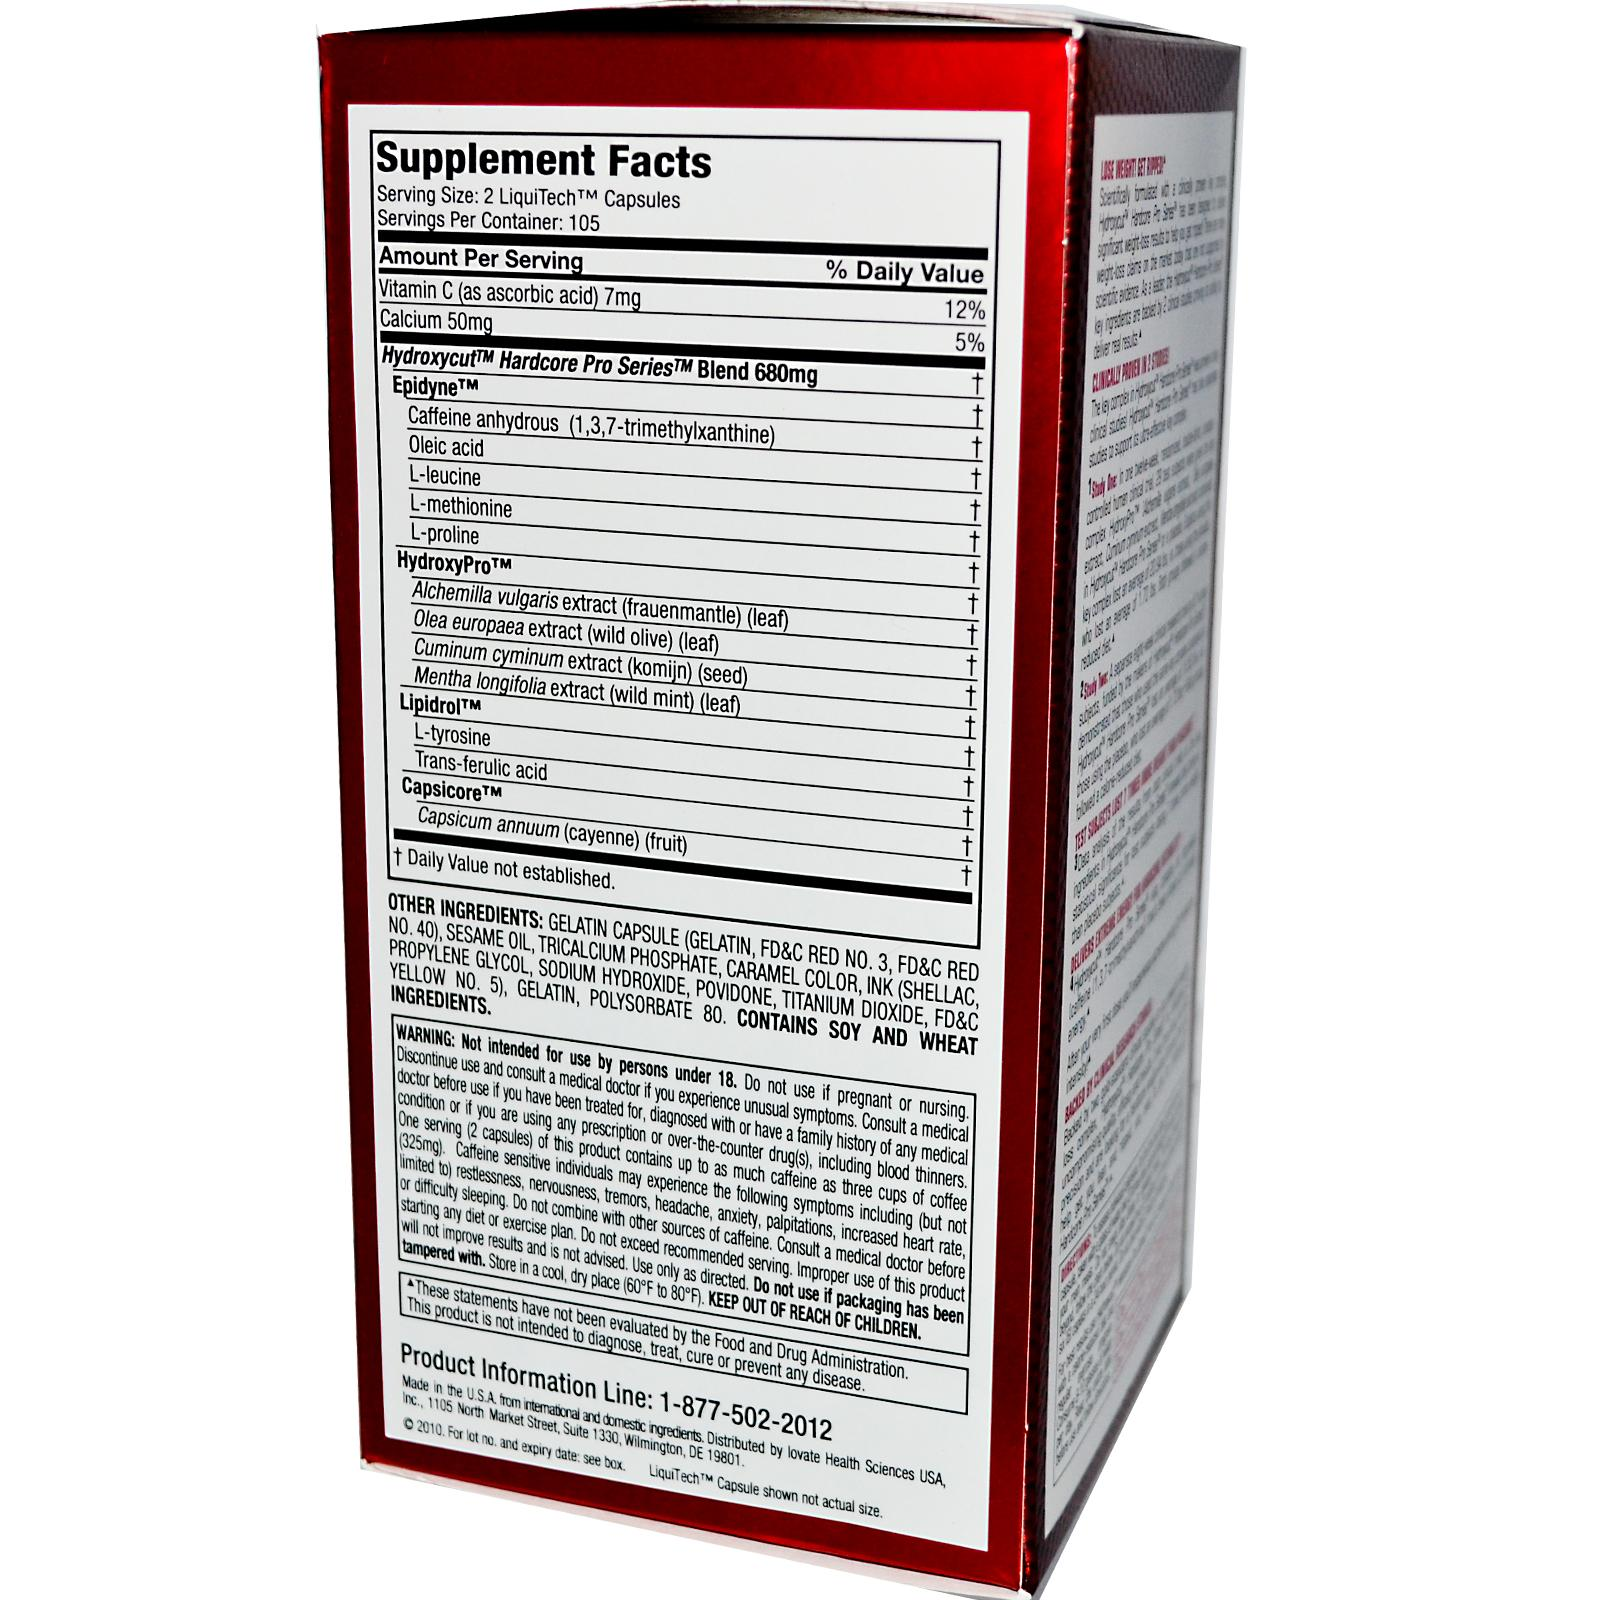 Hydroxycut Supplement facts